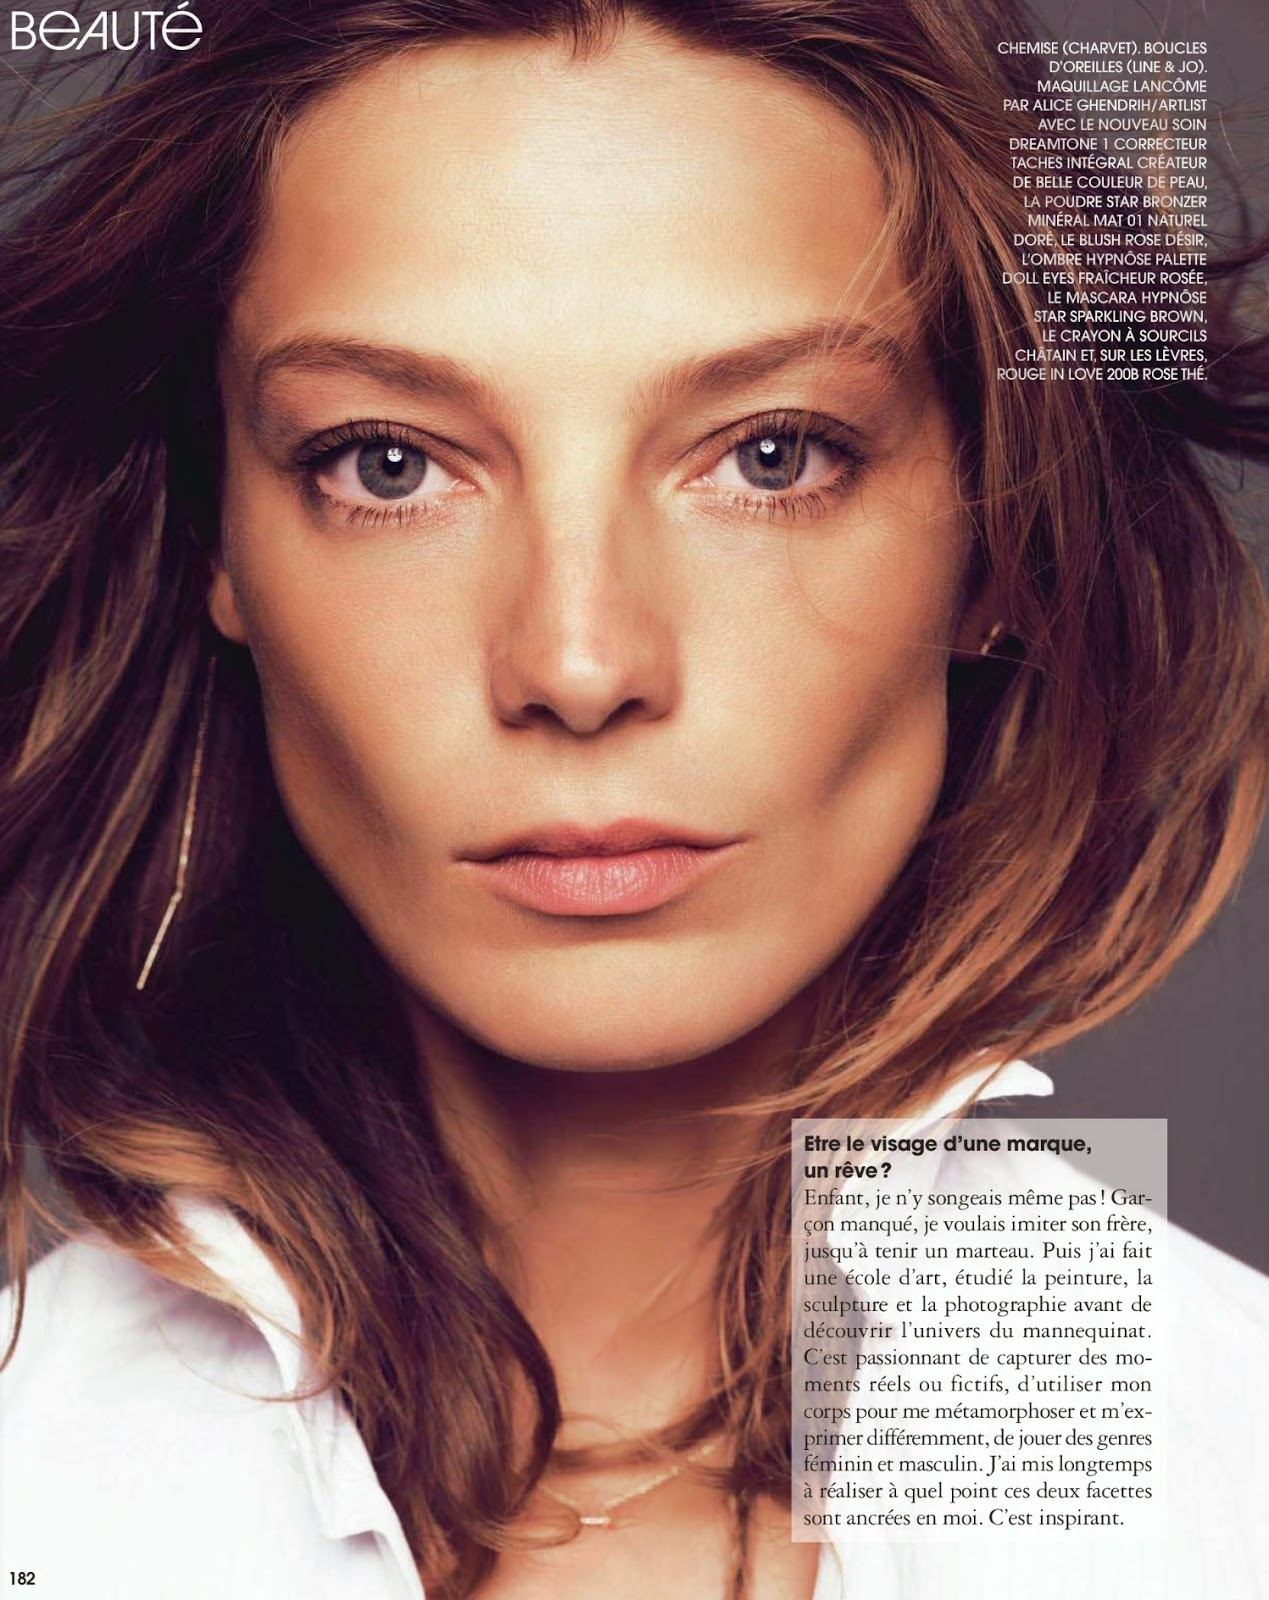 Daria Werbowy by Nico for MARIE CLAIRE France November 2013